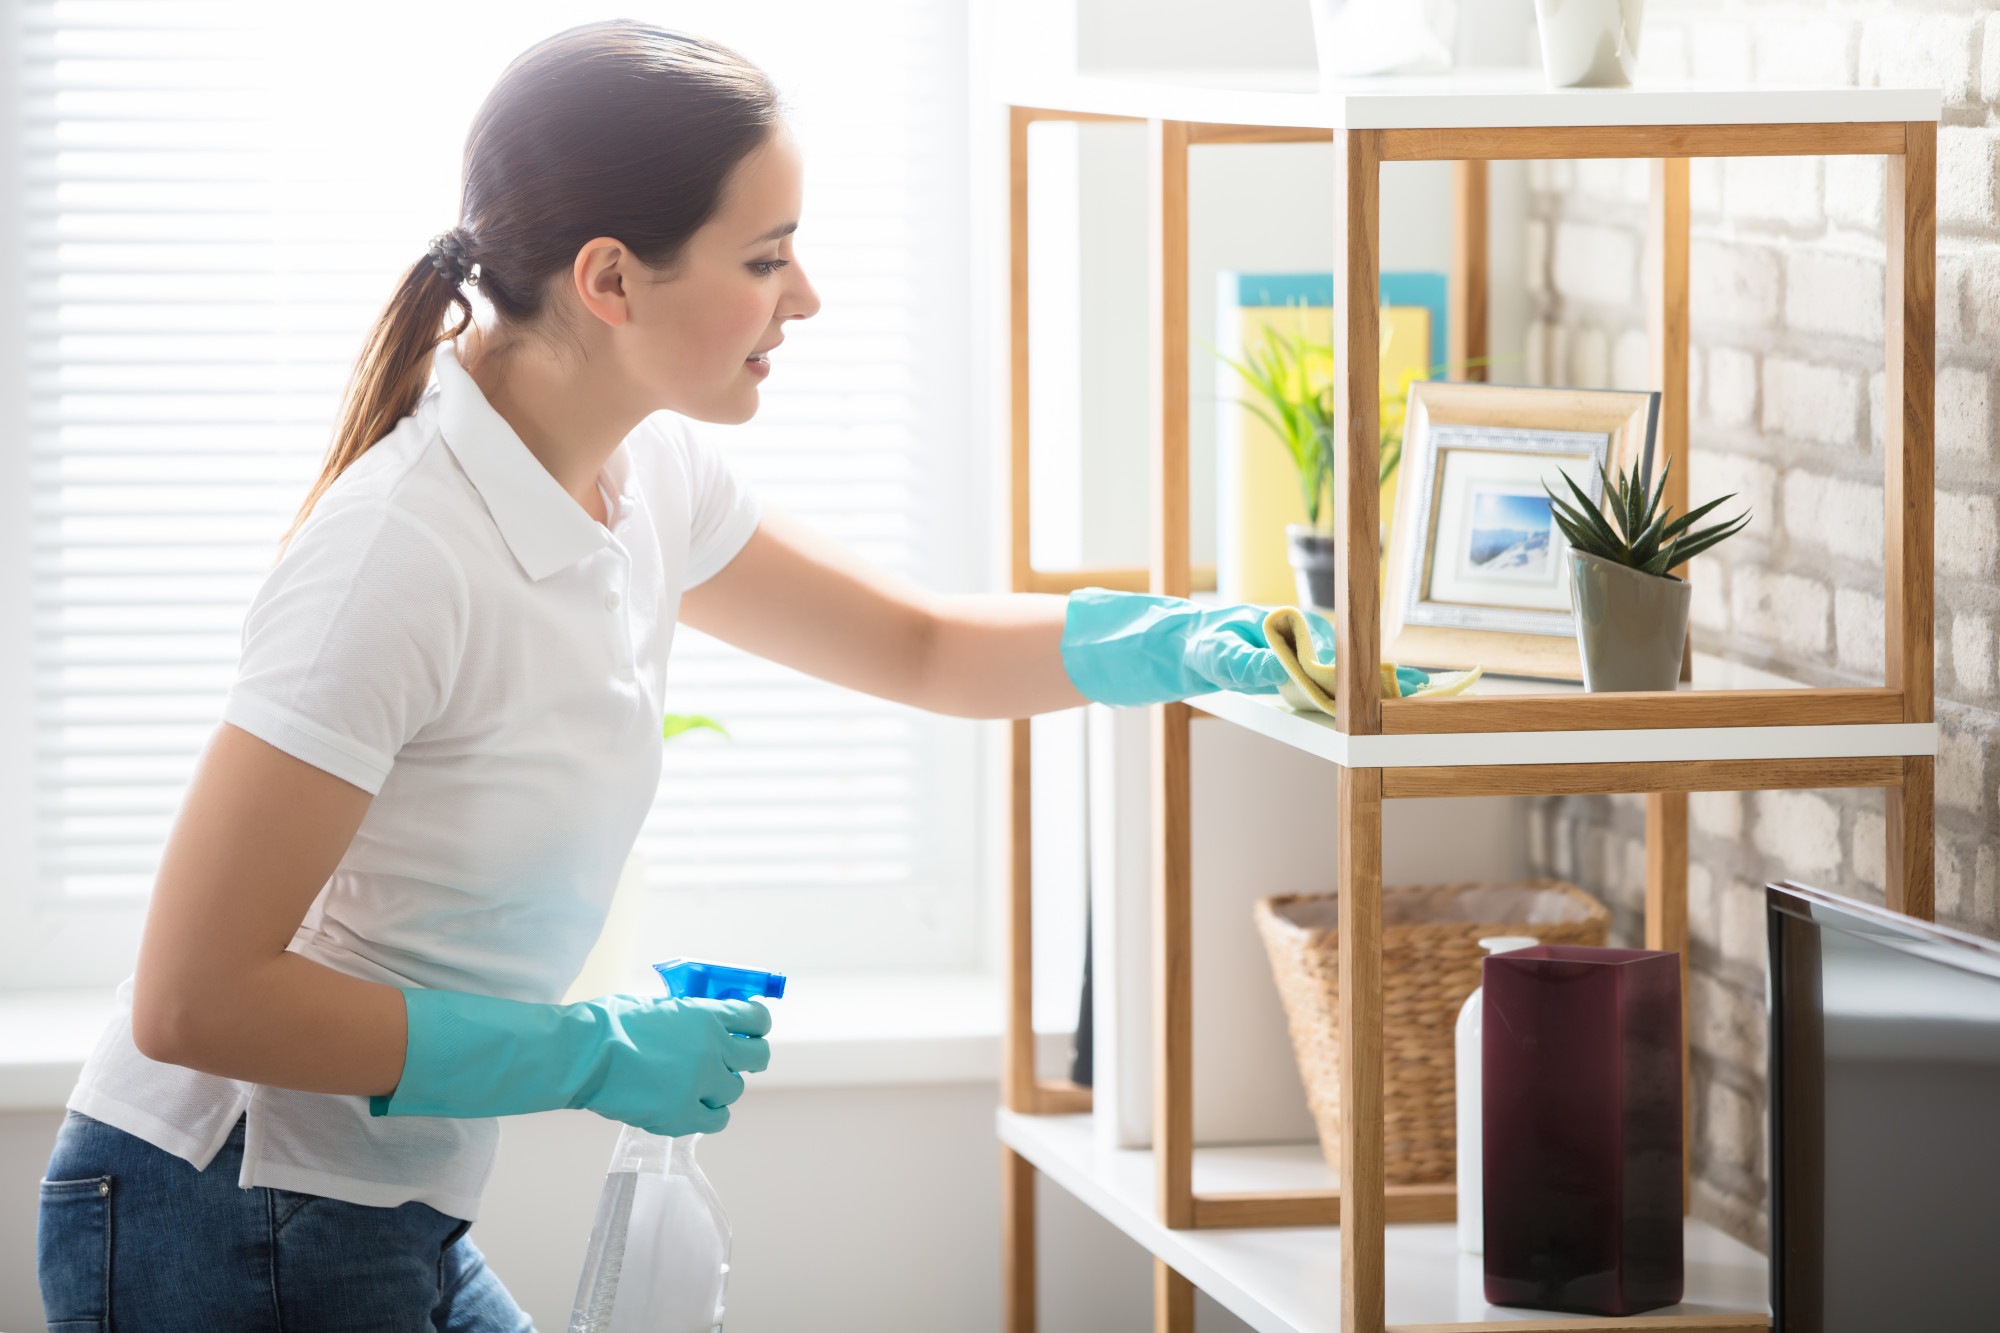 hire a house cleaner